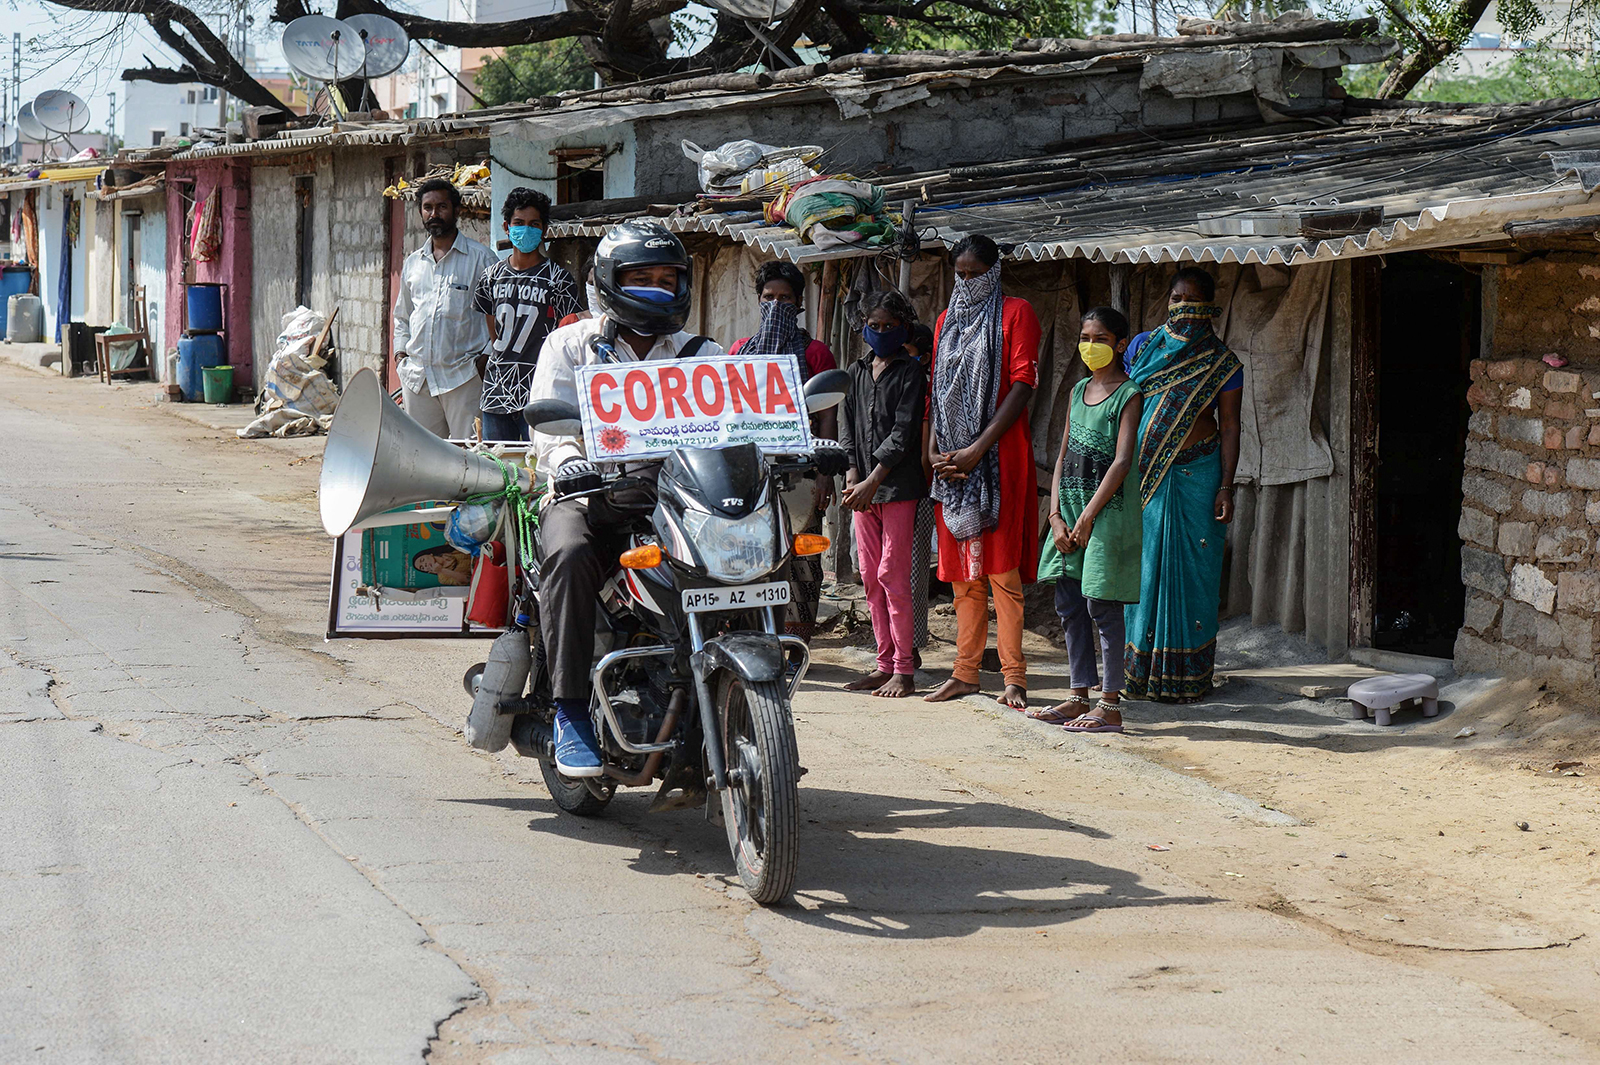 A man tours on his bike in the villages of Telangana state to spread awareness about Covid-19 in Hyderabad on May 21.